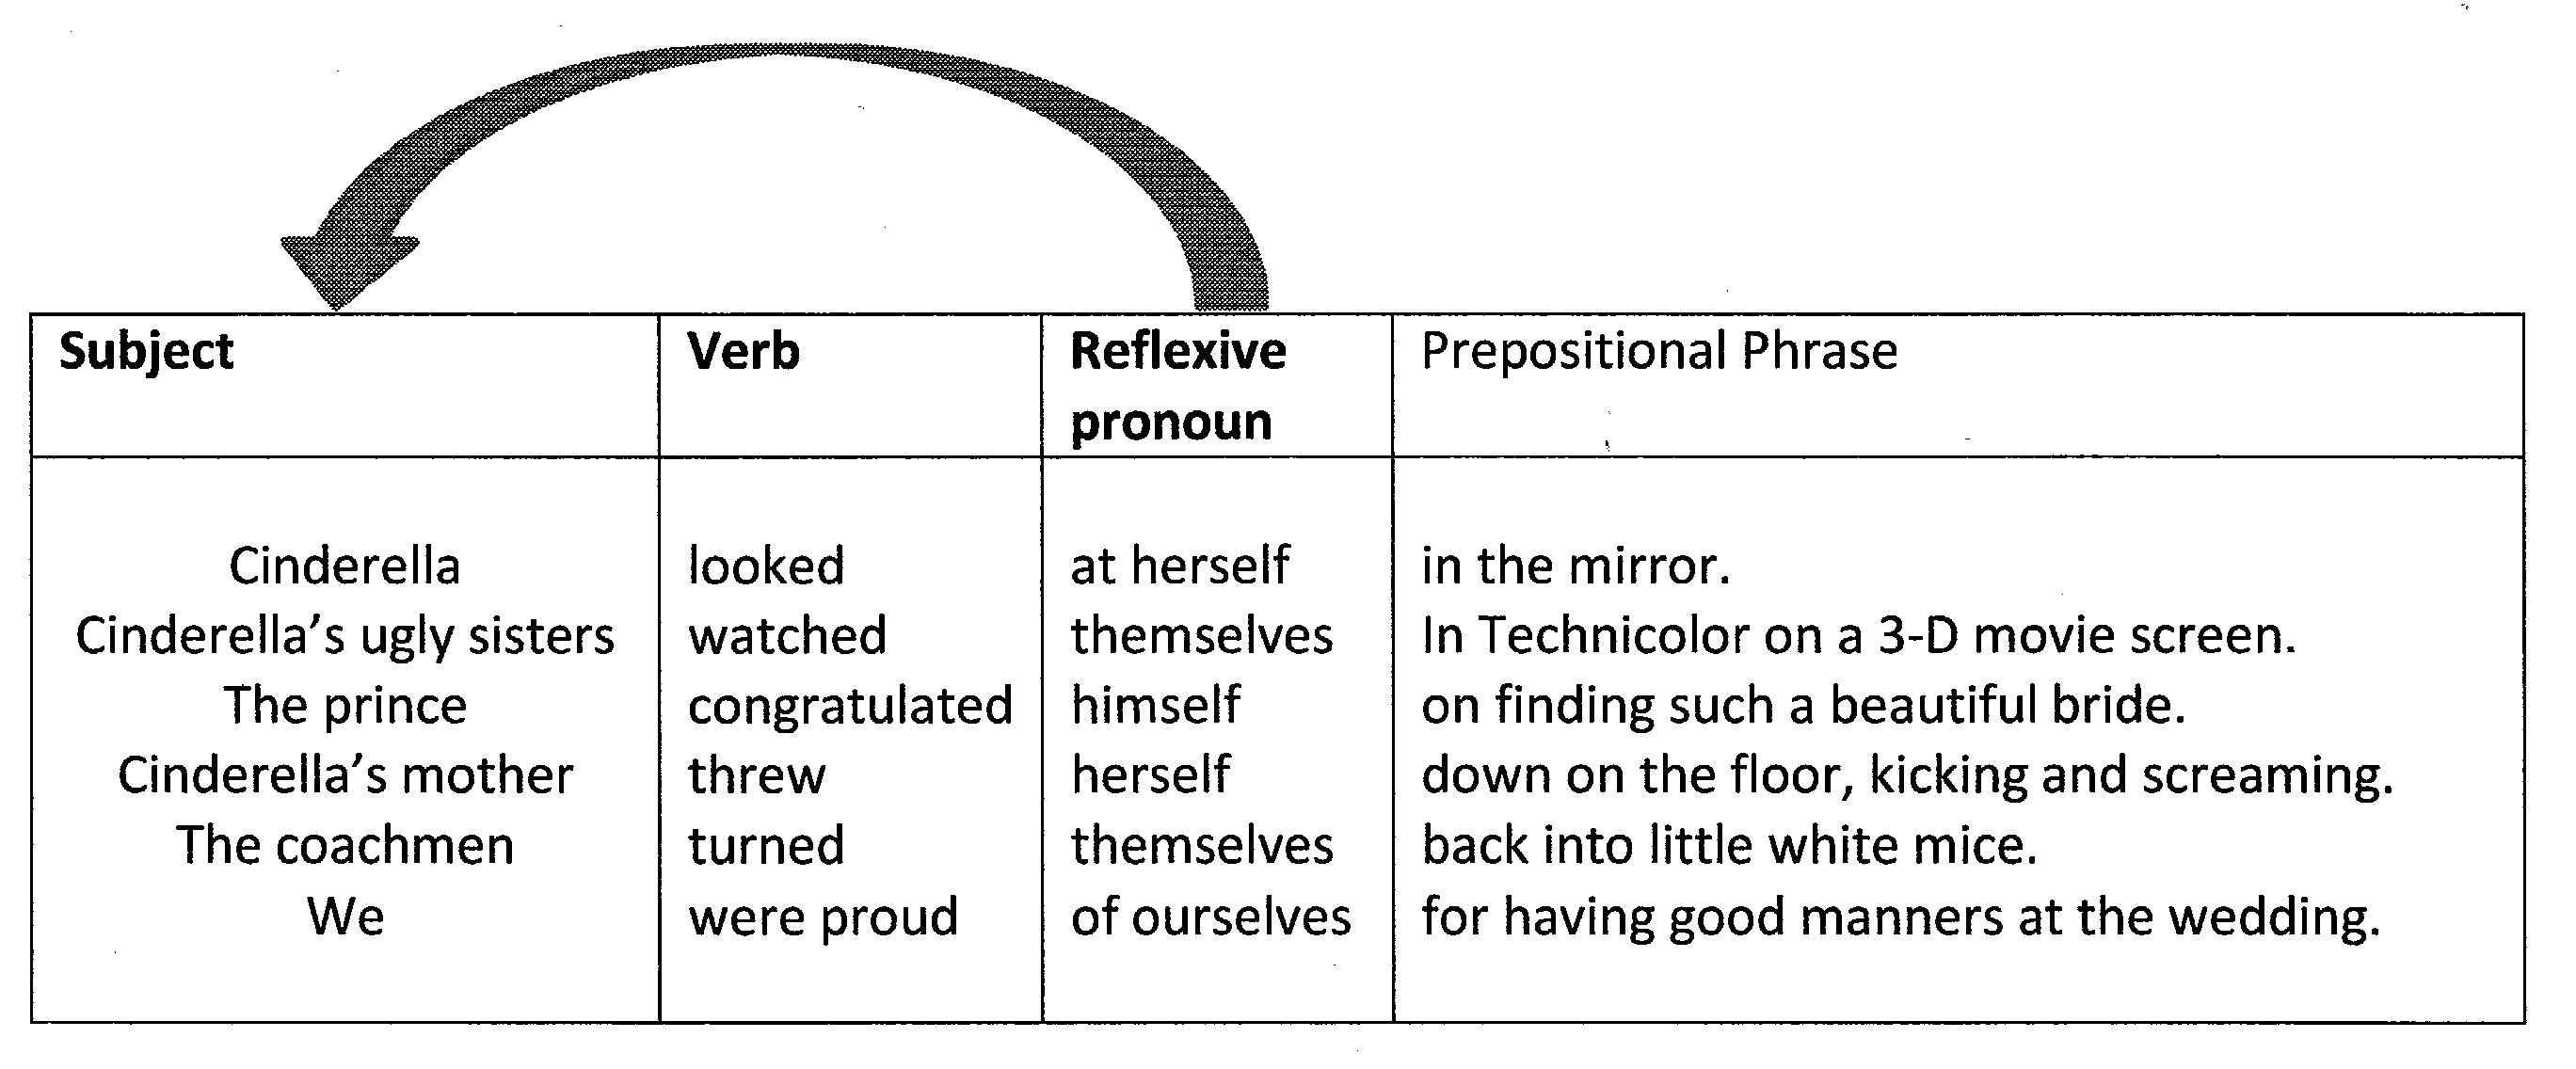 Reflexive pronouns worksheet |Reflective Pronoun